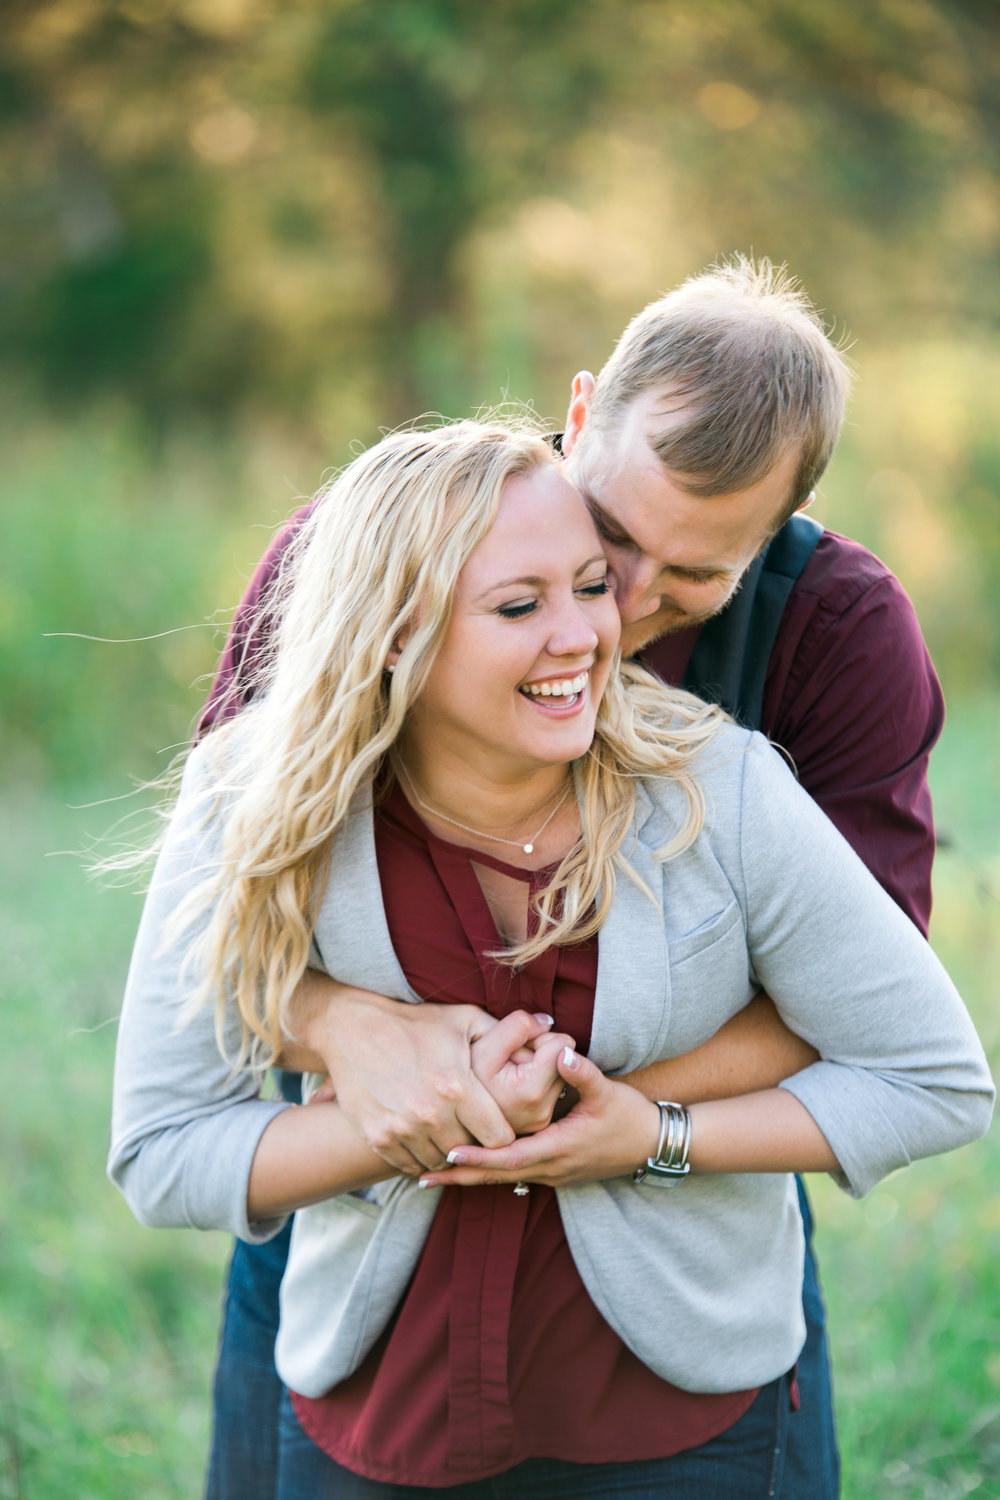 Lynchburg_College_Sorella_Farms_Baseball_Ballet_Virginia_Engagement_Session_Wedding_Photographers (59).jpg